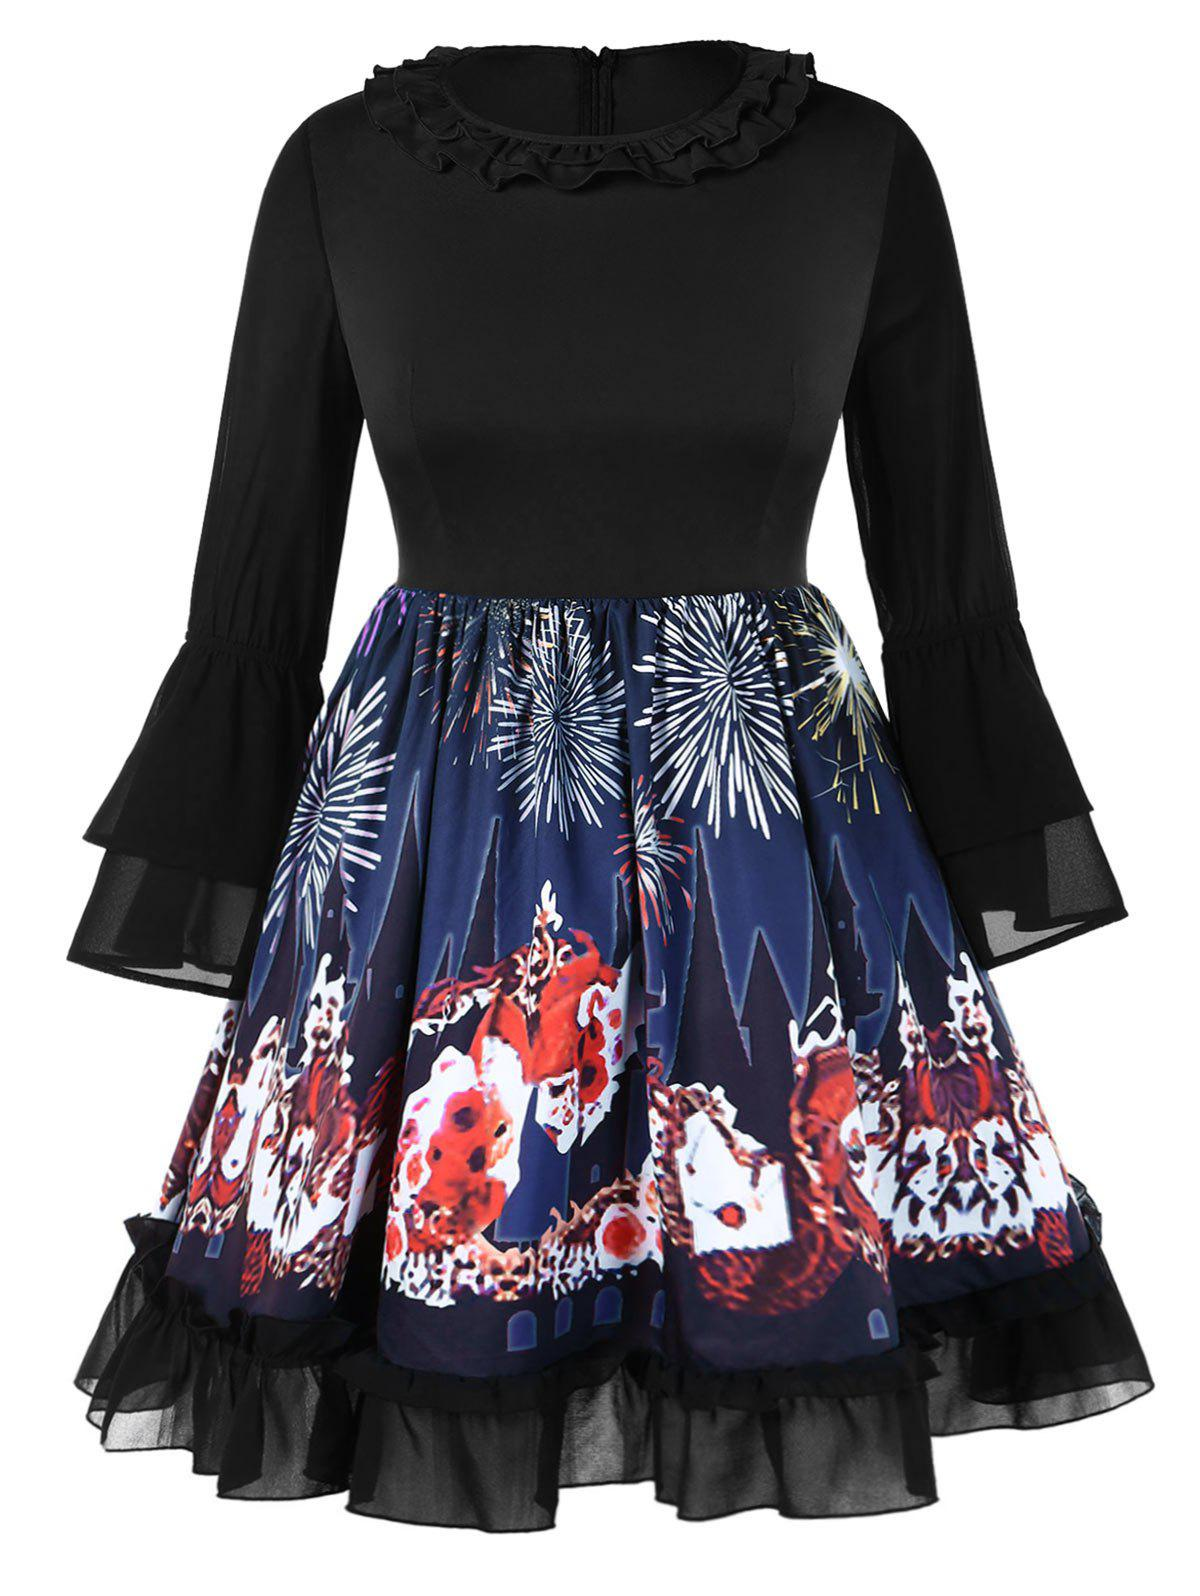 Chic Plus Size Bell Sleeves Graphic Knee Length Halloween Dress